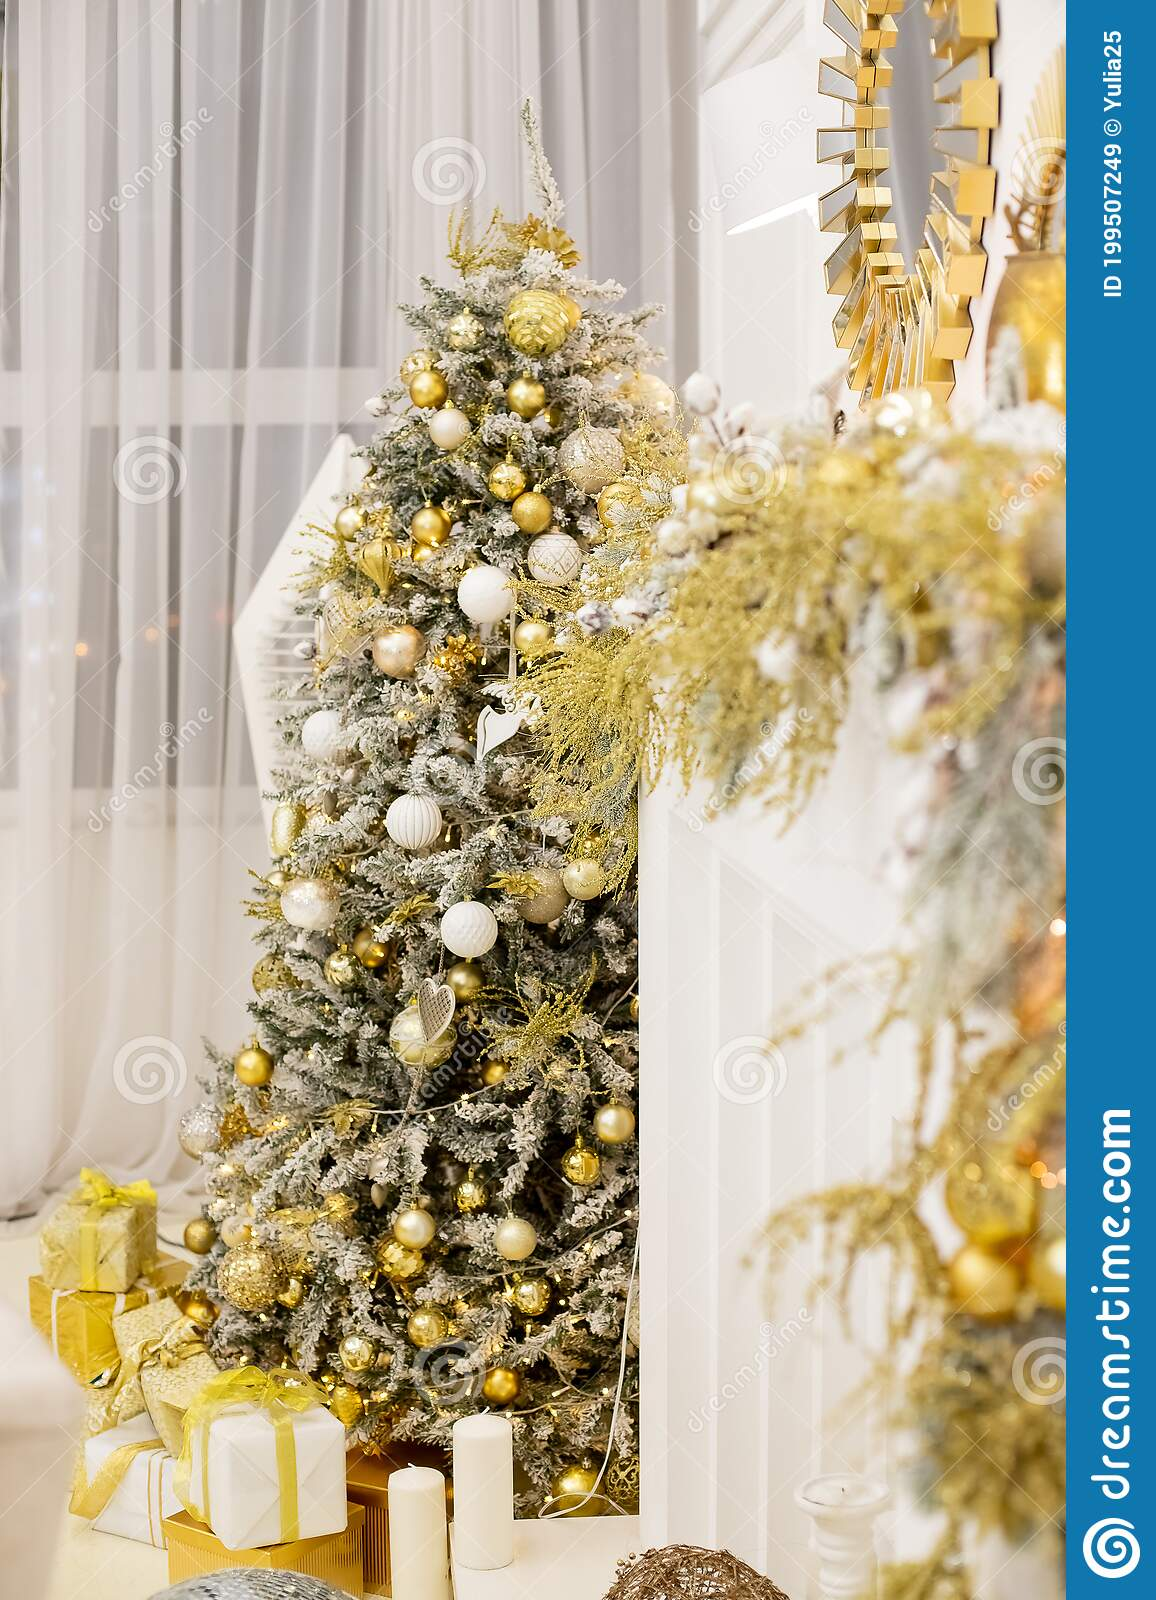 Christmas Tree With Presents Luxury New Year Decor Beige White Golden Silver Christmas Tree Decoration Merry Stock Image Image Of Fireplace December 199507249